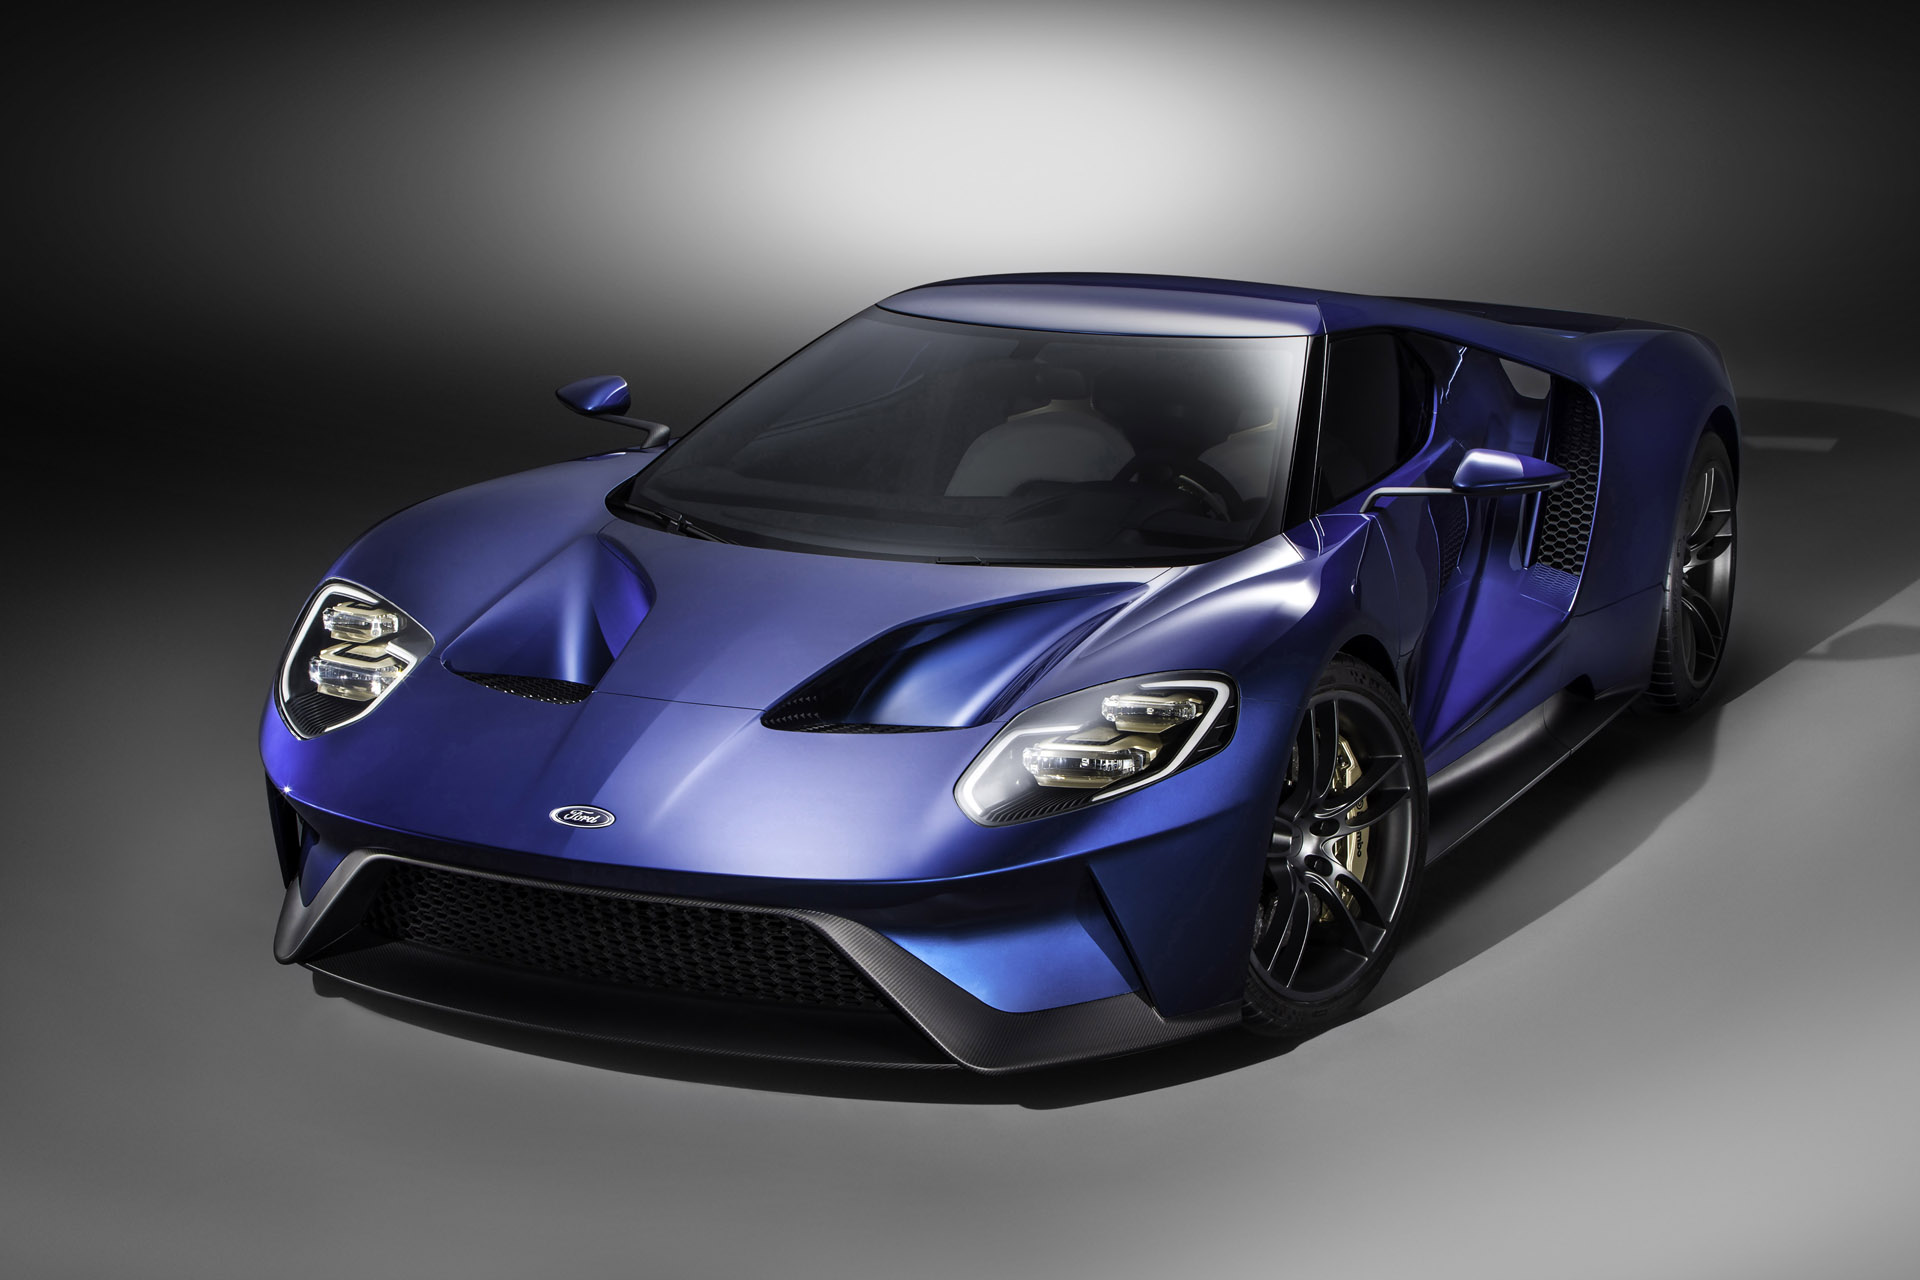 The all-new Ford GT supercar is an ultra-high-performance, rear-wheel drive, carbon-fiber two-door coupe powered by a mid-mounted, twin-turbocharged EcoBoost® V-6 engine, and represents the pinnacle of the Ford Performance group as a showcase for Ford innovation and expertise in aerodynamics, lightweight construction and connected car technology.